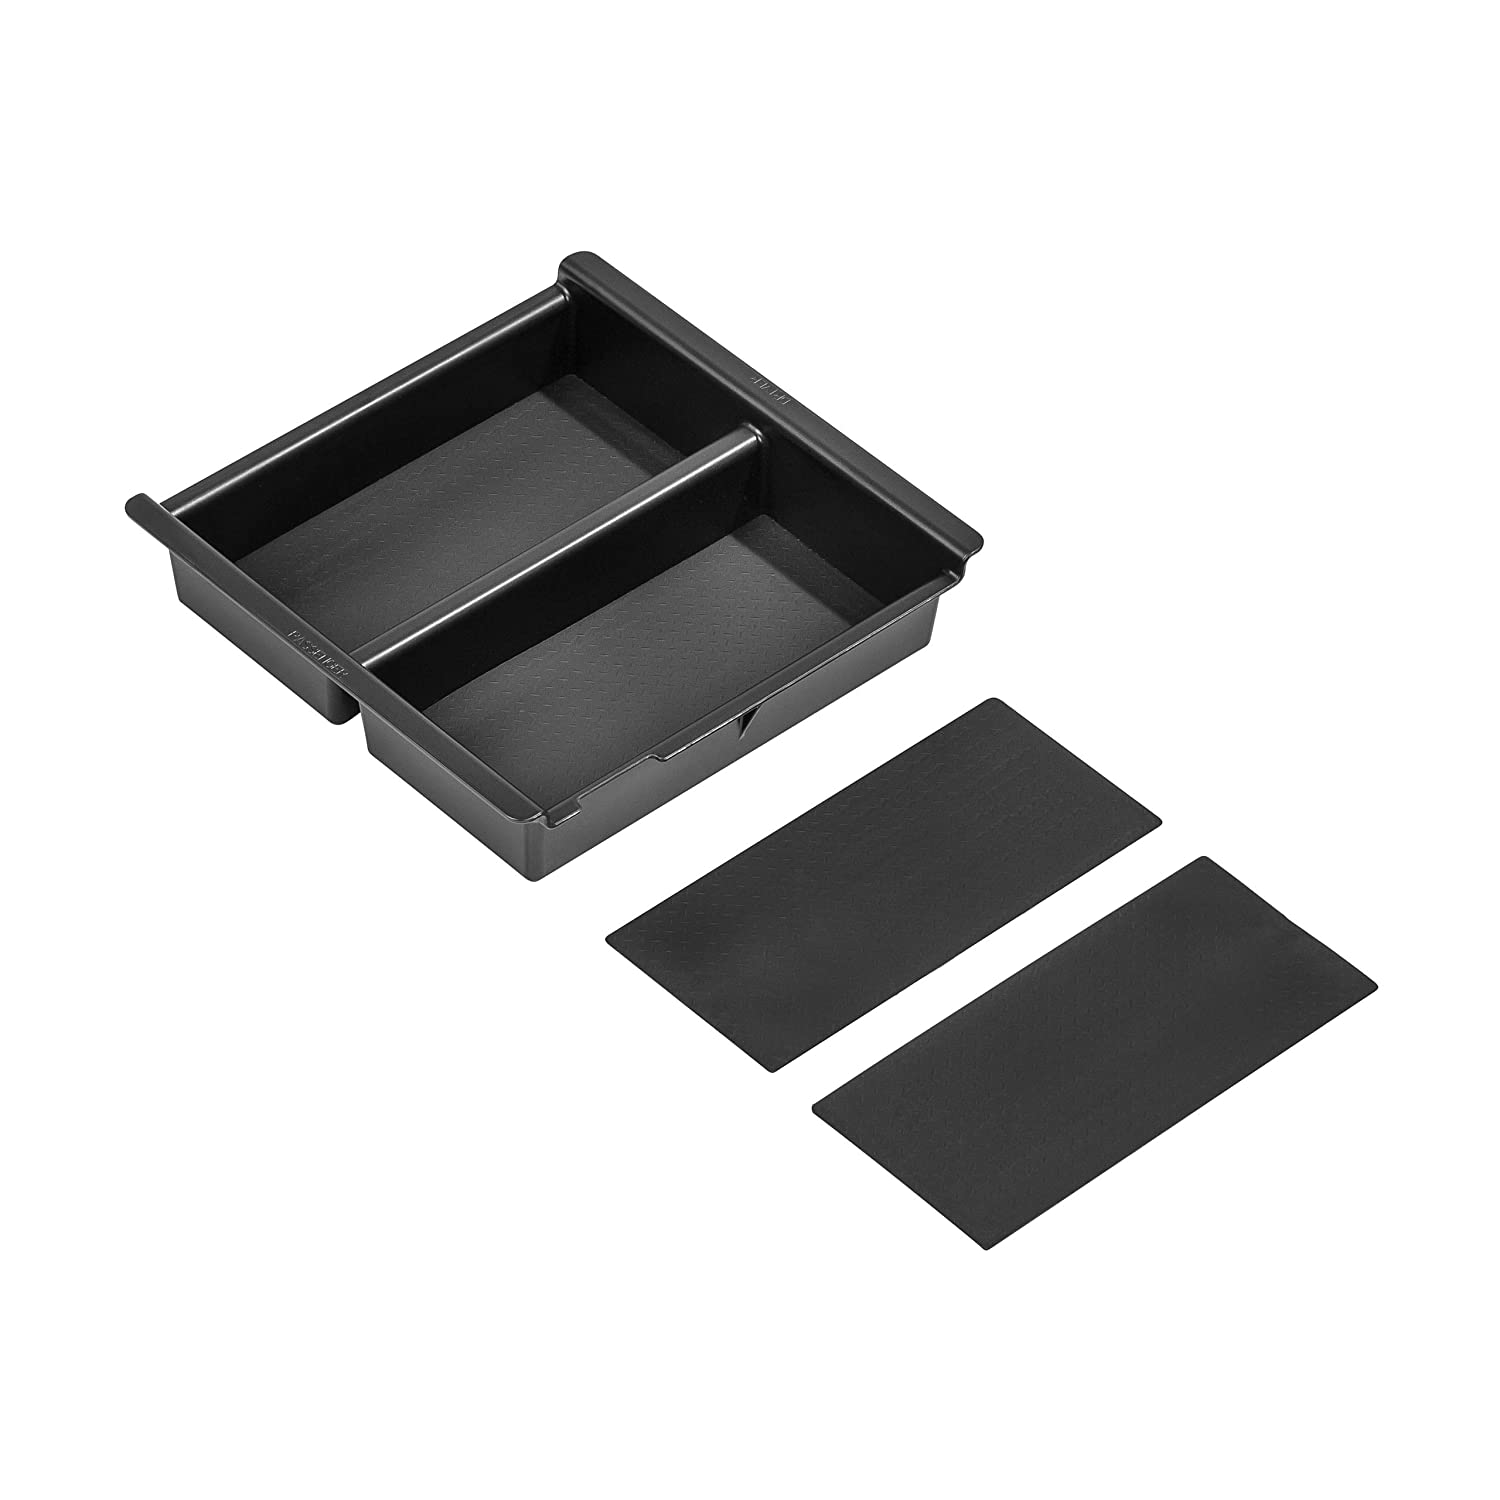 Vehicle OCD Center Console Organizer Tray for Toyota Tacoma 2016-2019 - Made in USA